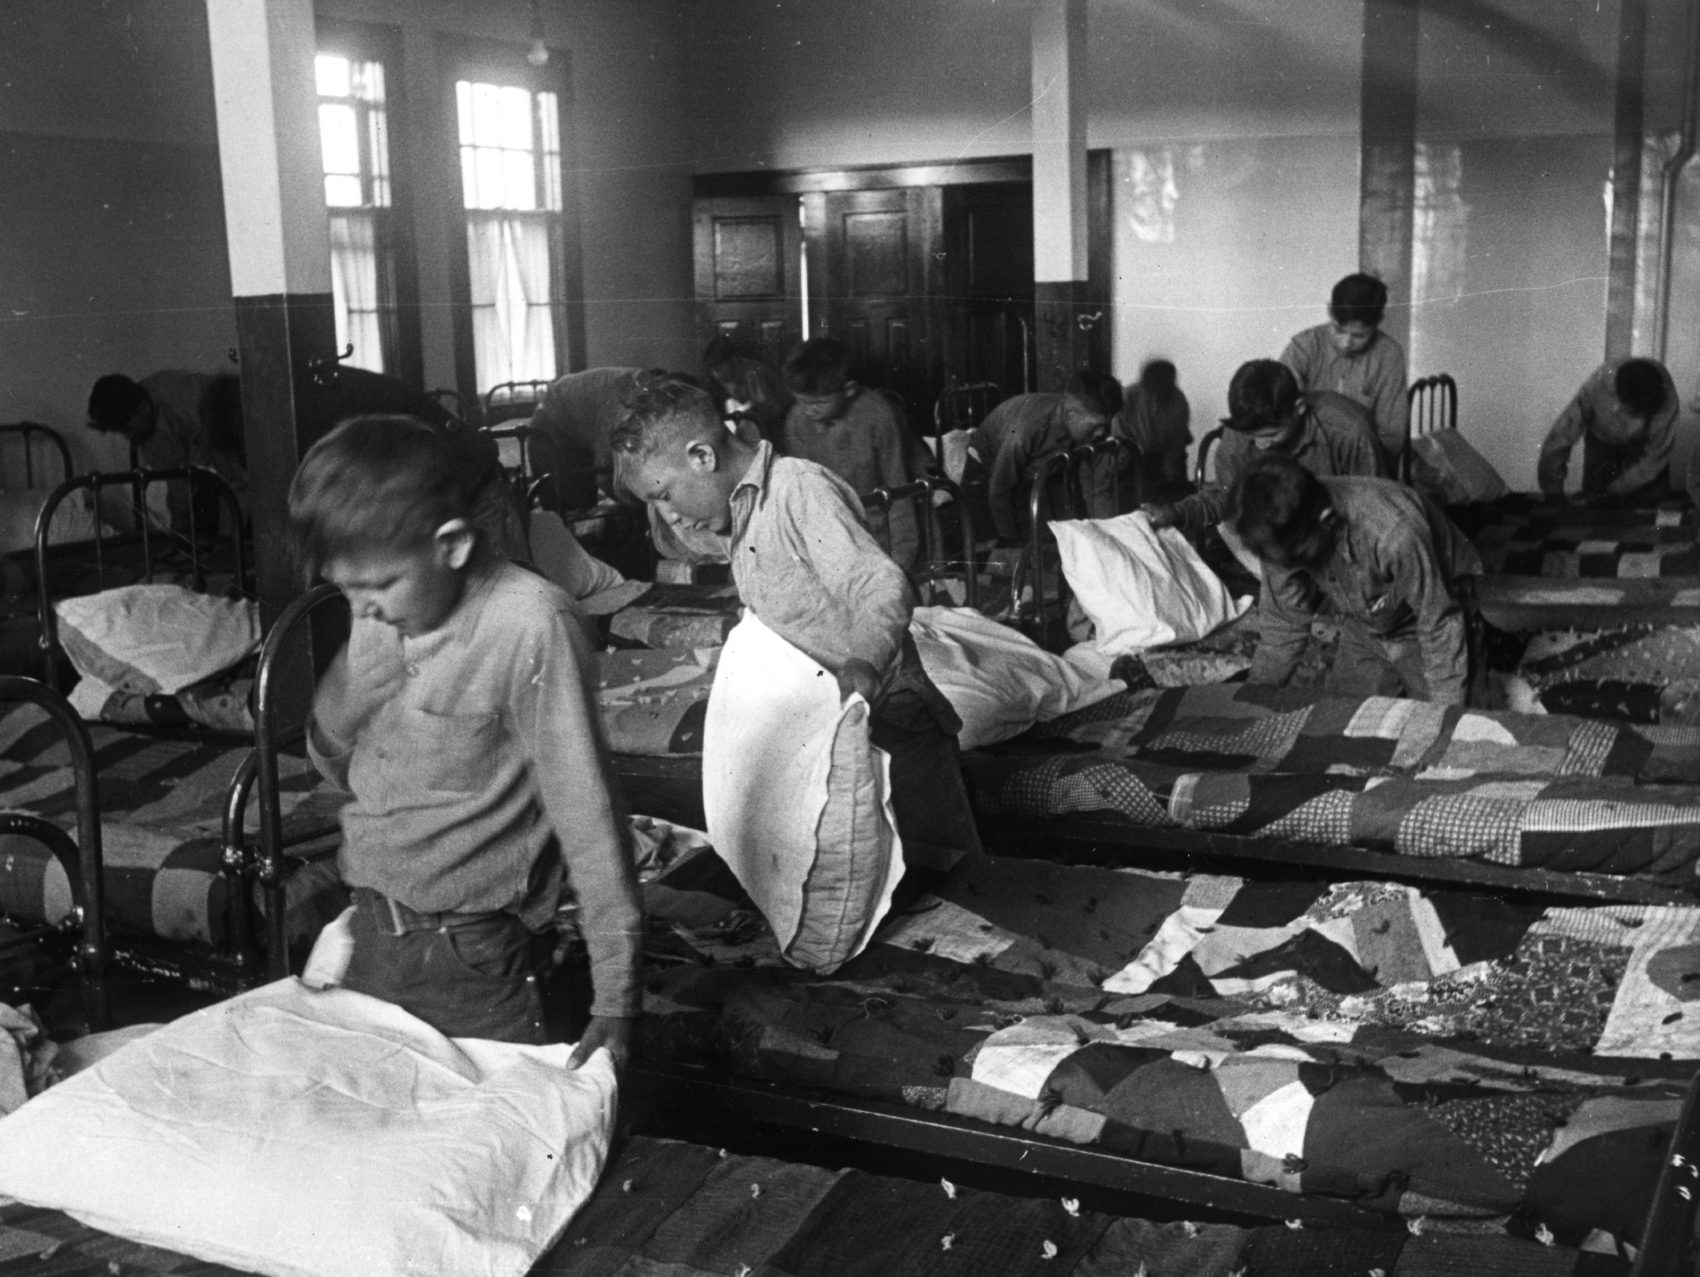 Students in Indian residential schools were often subjected to abuse. (Hulton Archive/Getty Images)